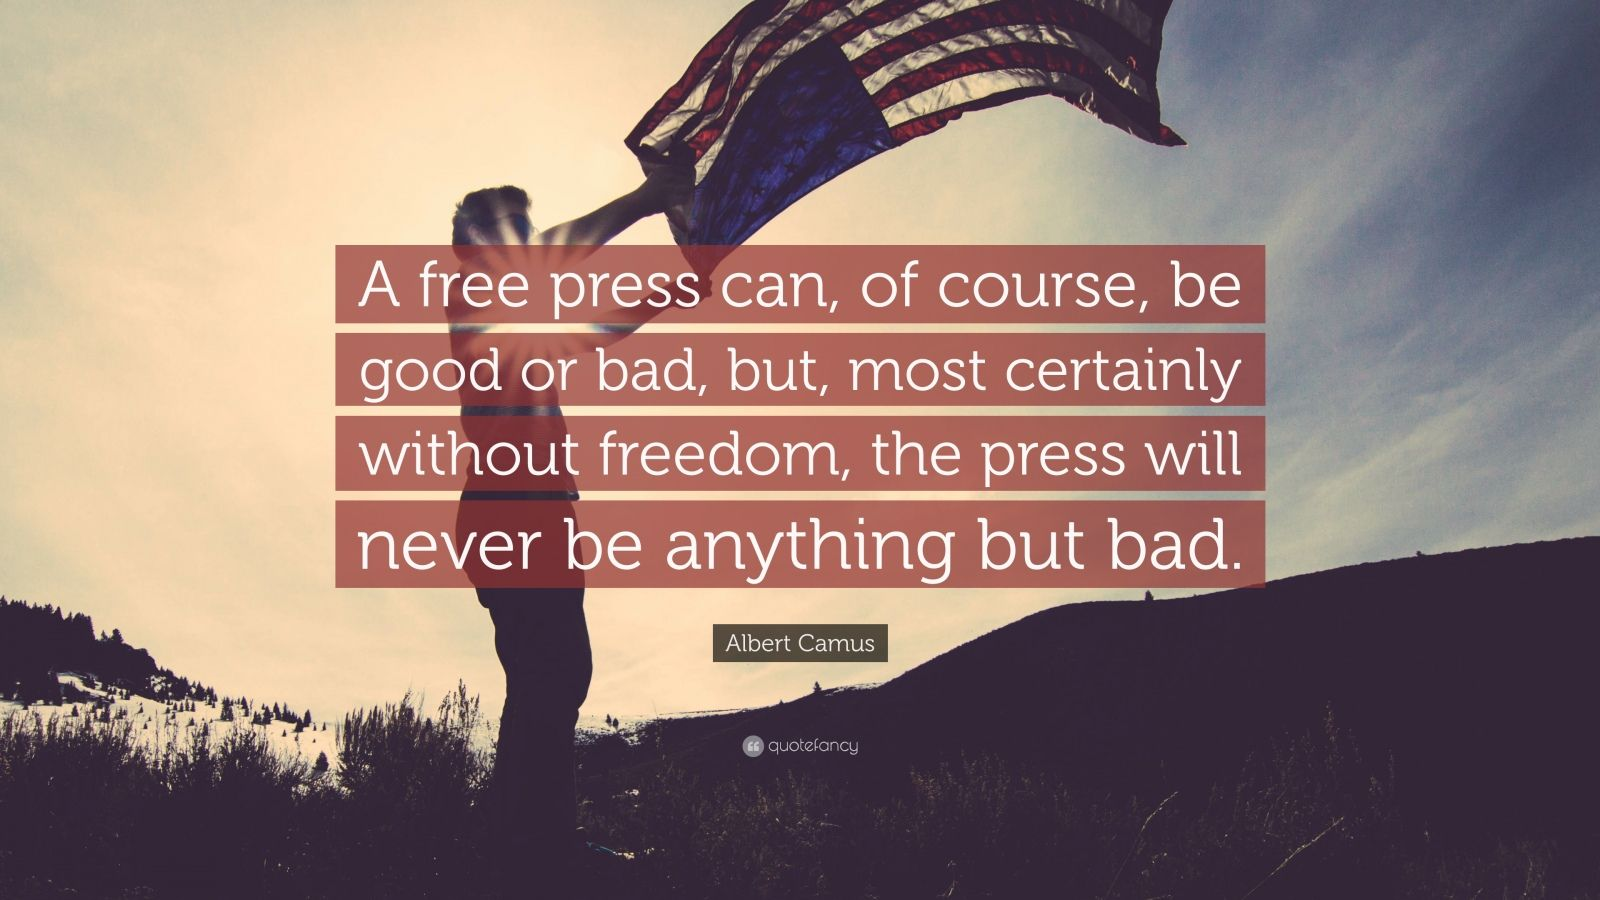 """Albert Camus Quote: """"A free press can, of course, be good or bad, but, most certainly without freedom, the press will never be anything but bad."""""""